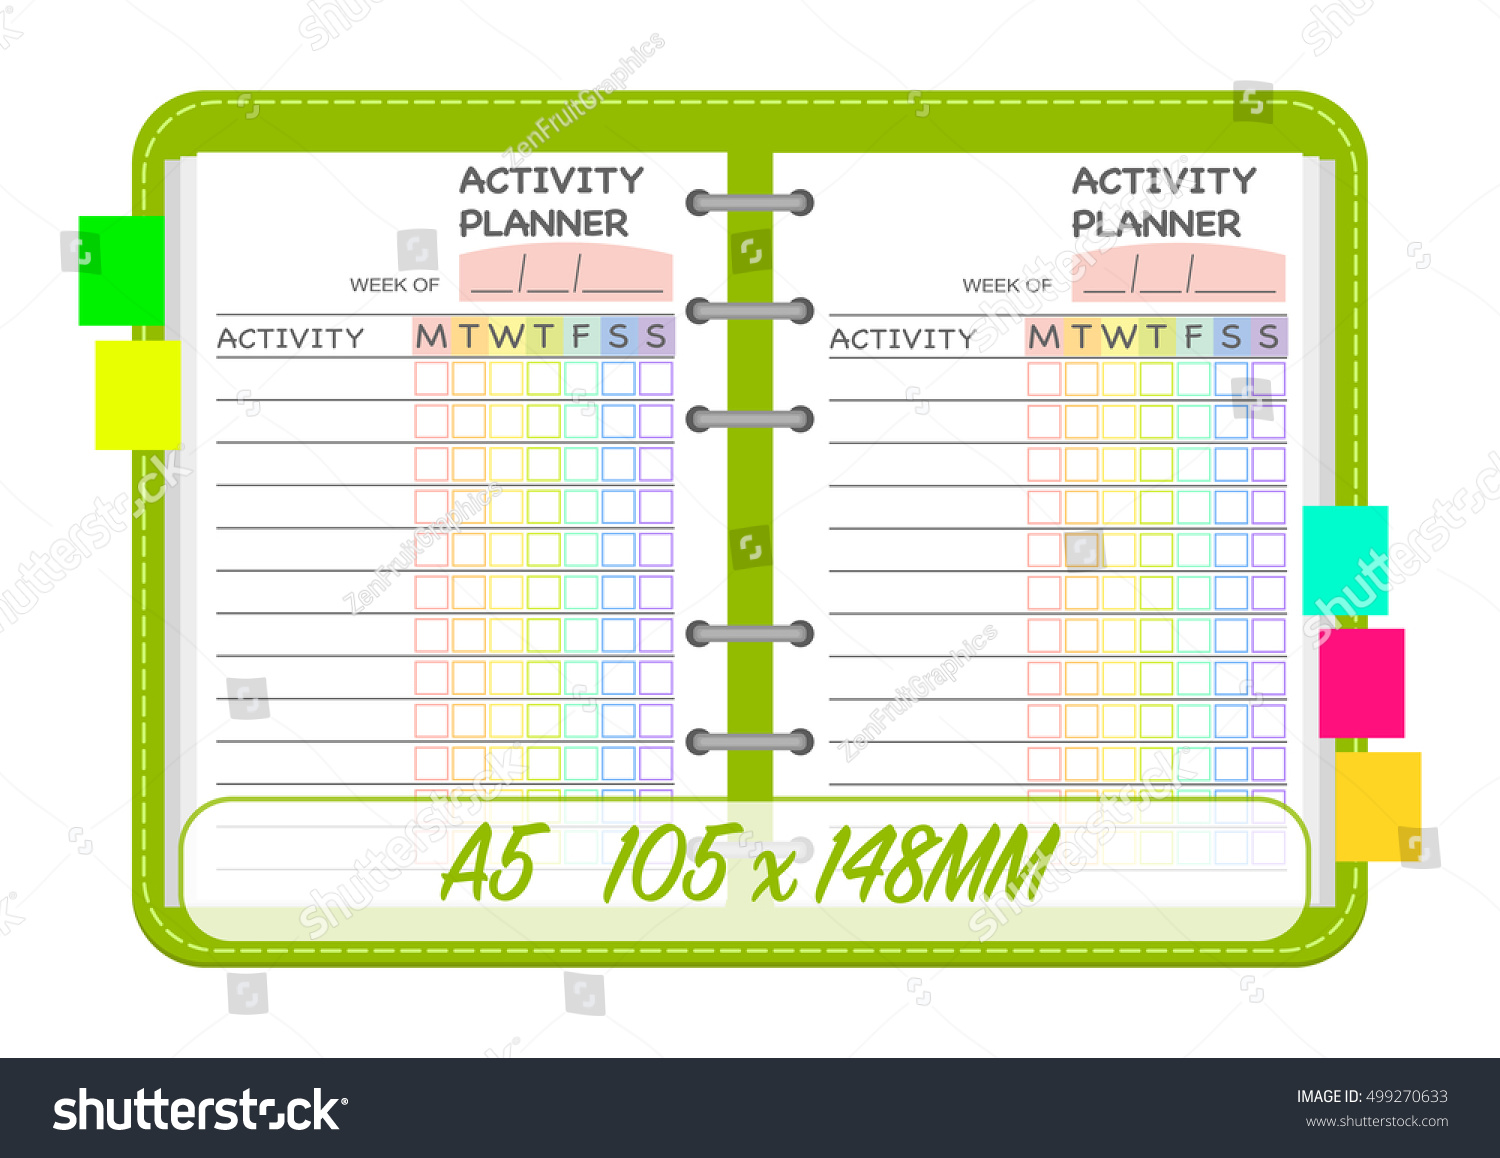 weekly activities planner template organization chart daily routine check list notebook page insert